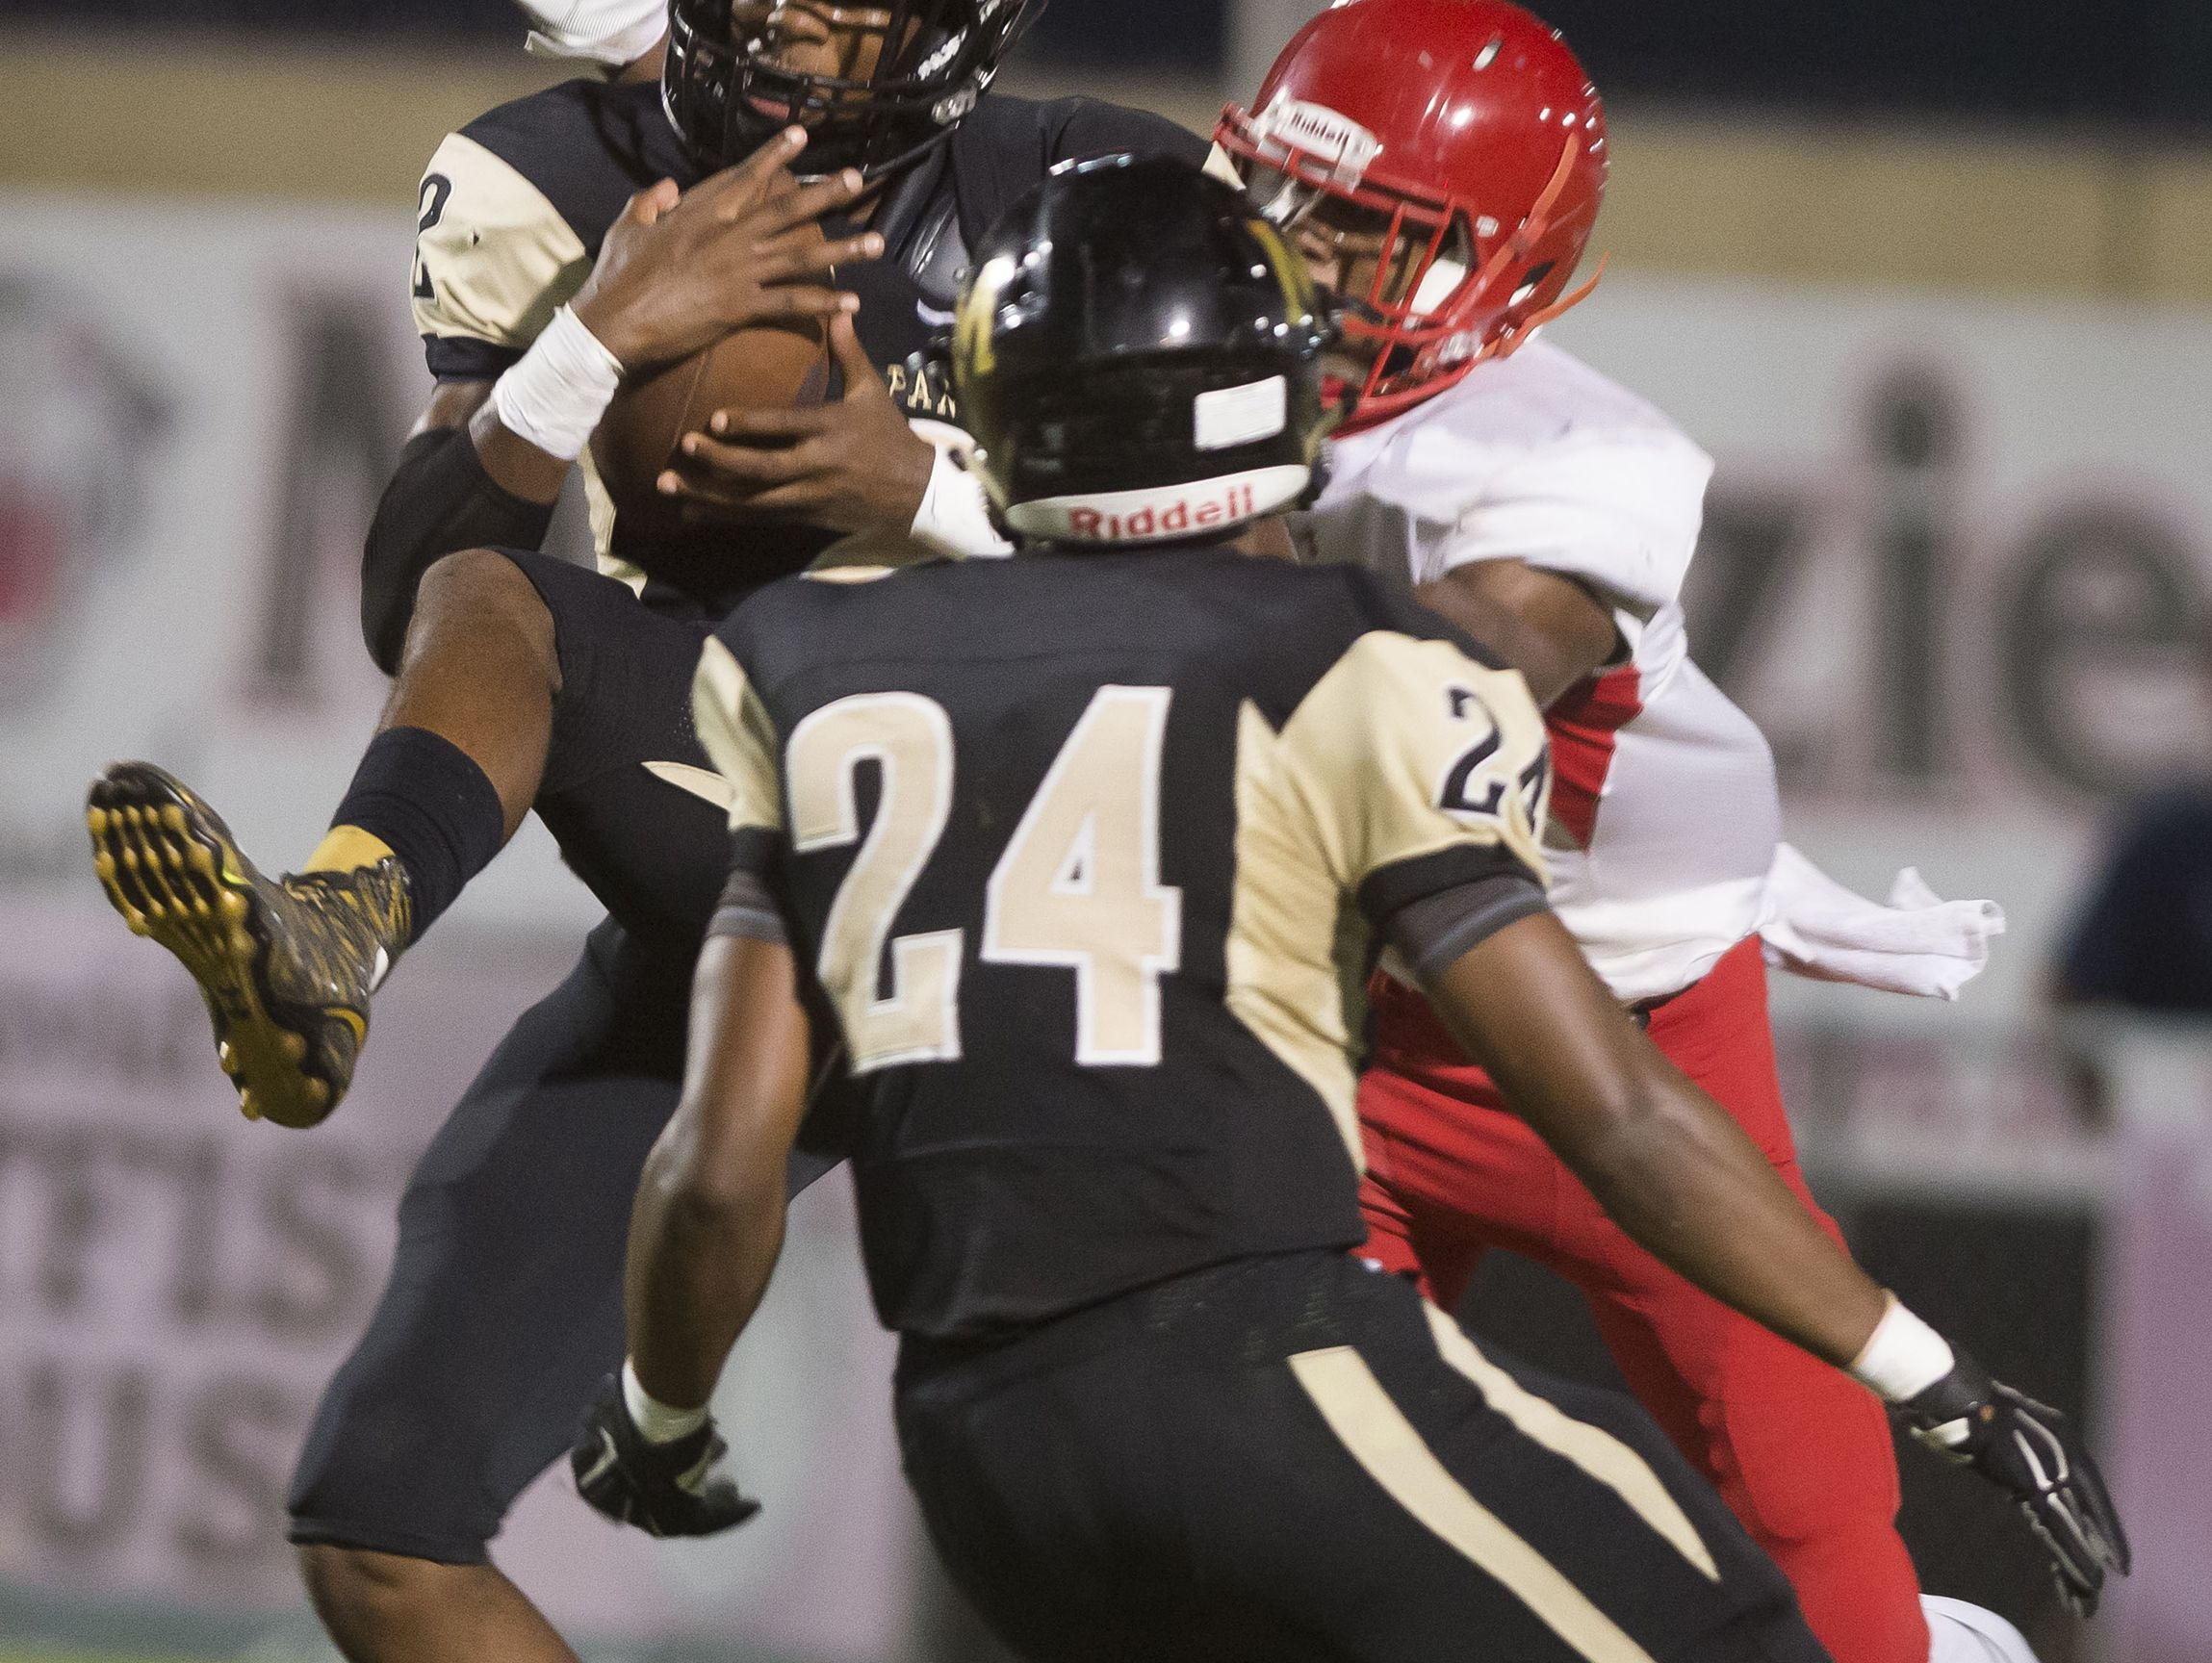 Milton High School defensive back Martavious Odom (No. 2) intercepts a Pine Forest High pass inside the 5-yard line during Friday night's game against the Eagles.